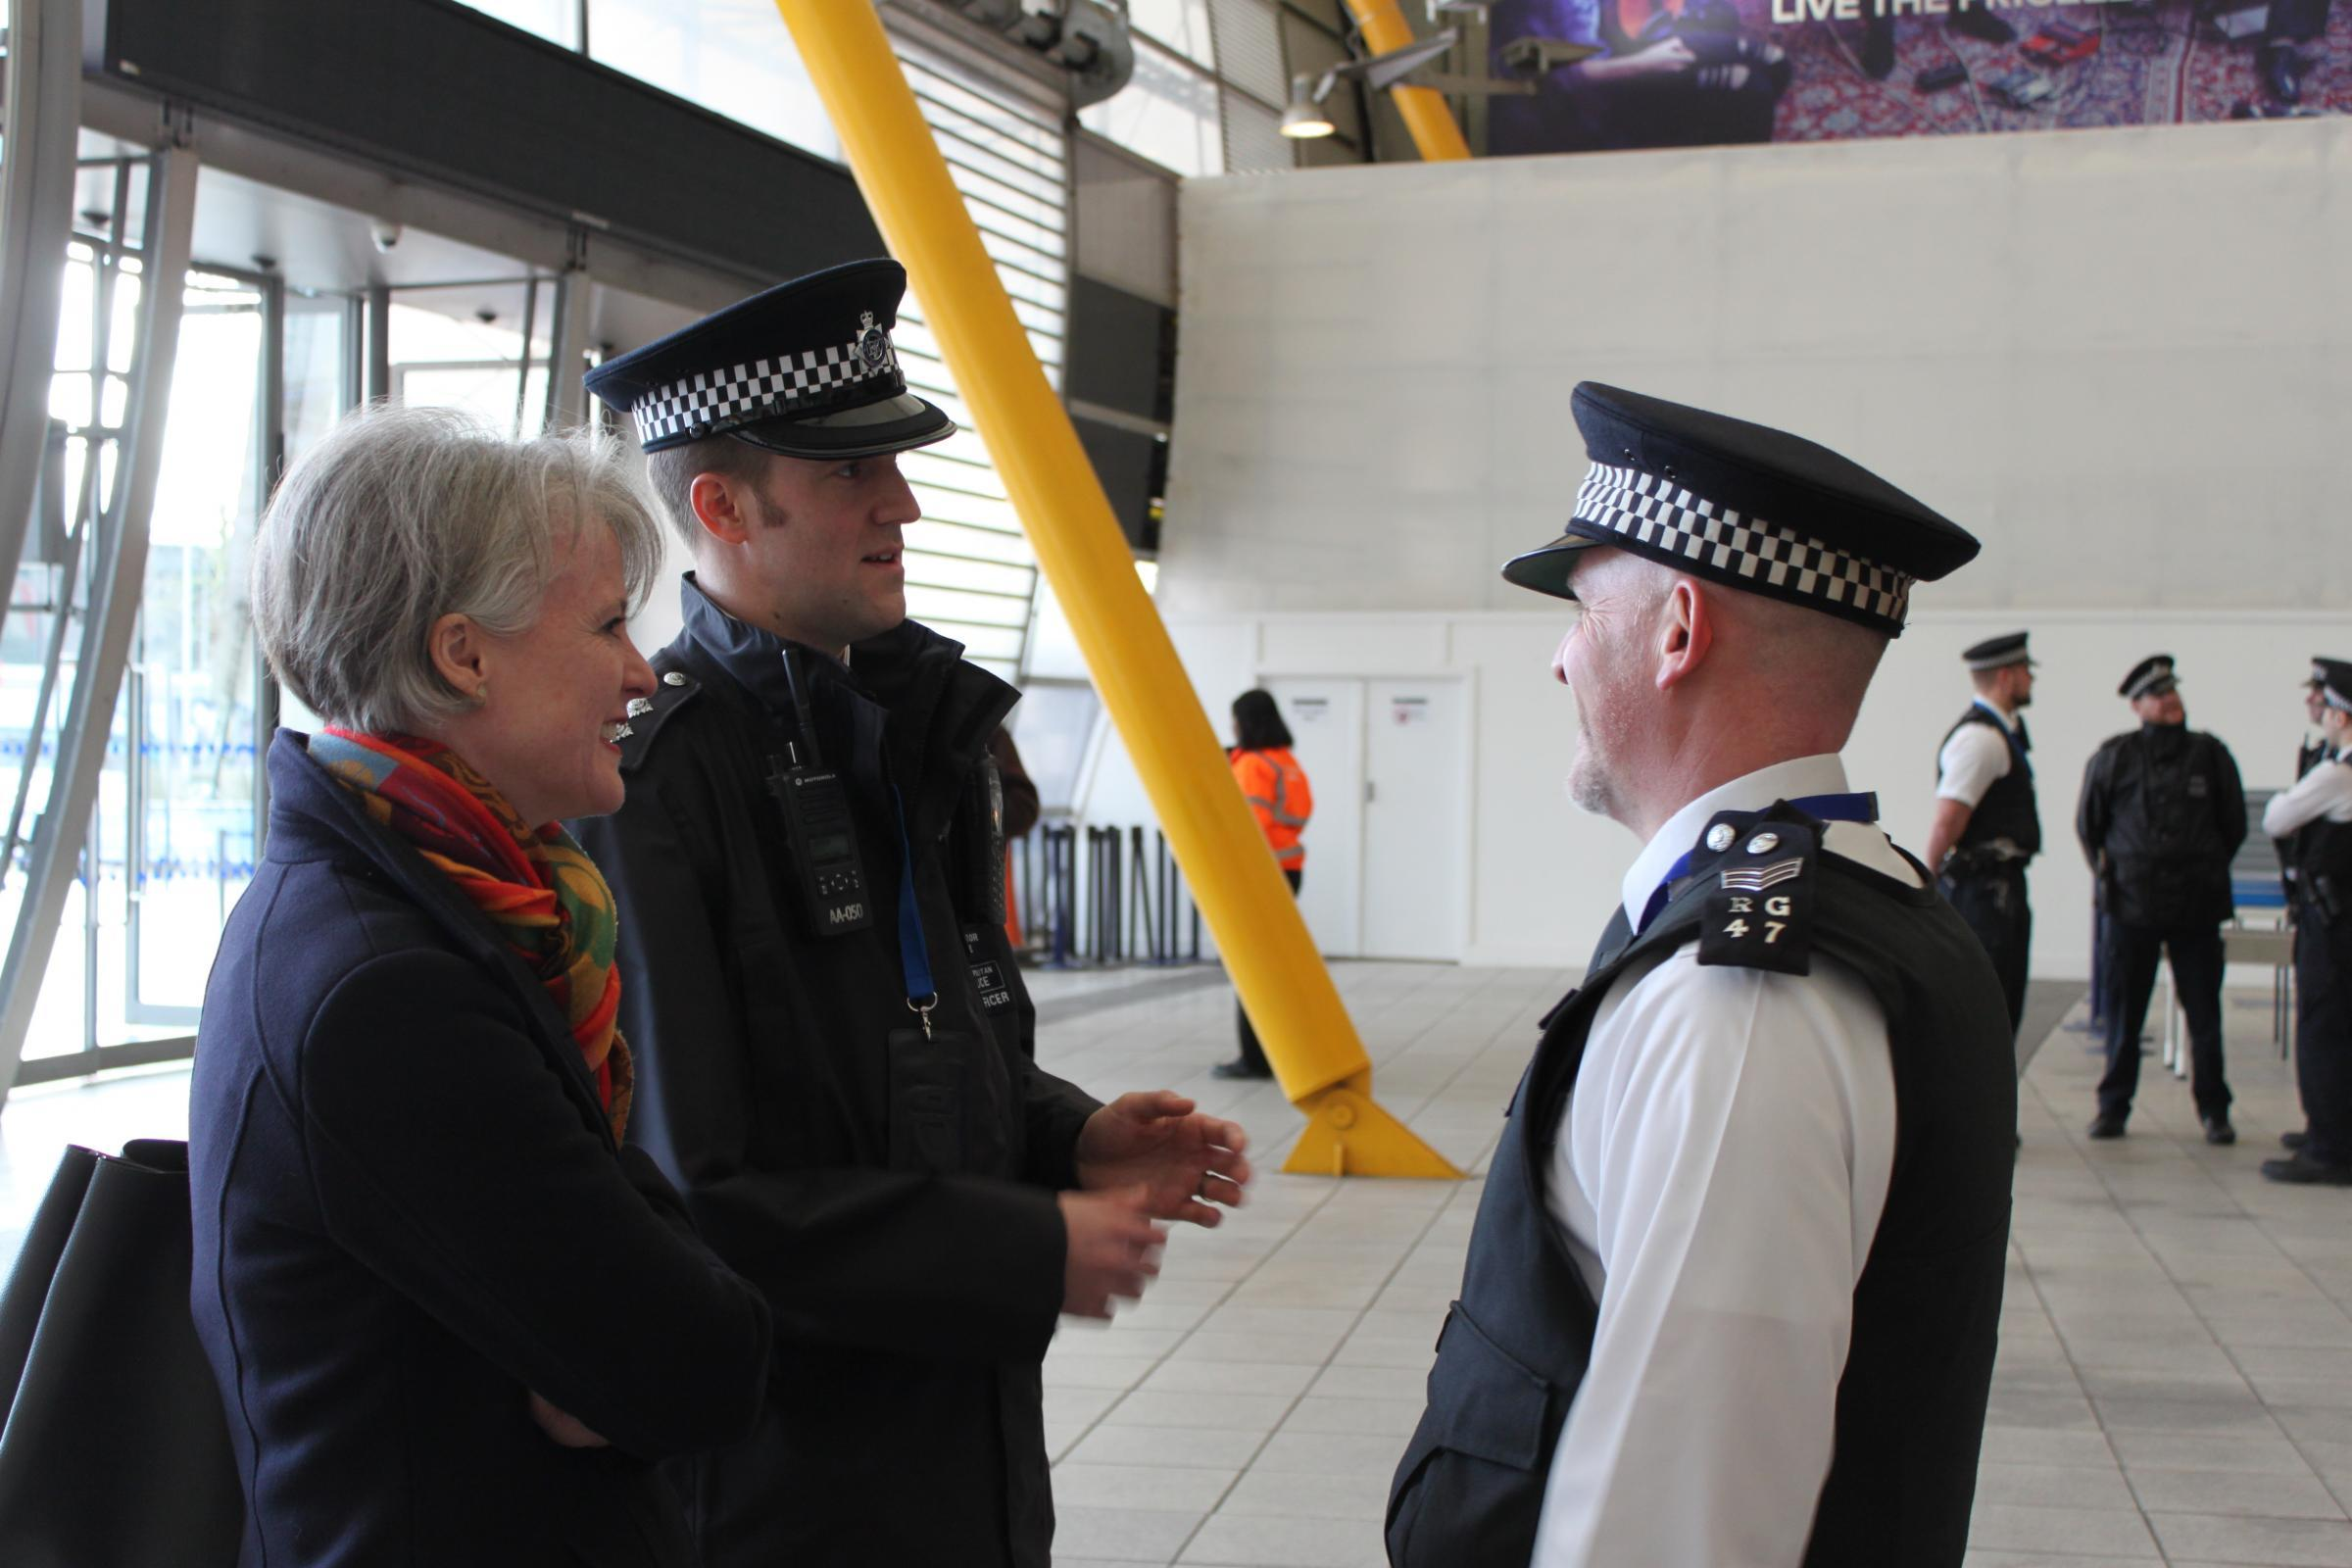 Sophie Linden, London's deputy mayor for policing, meeting officers from the Greenwich Peninsula Safer Neighbourhood team in 2017